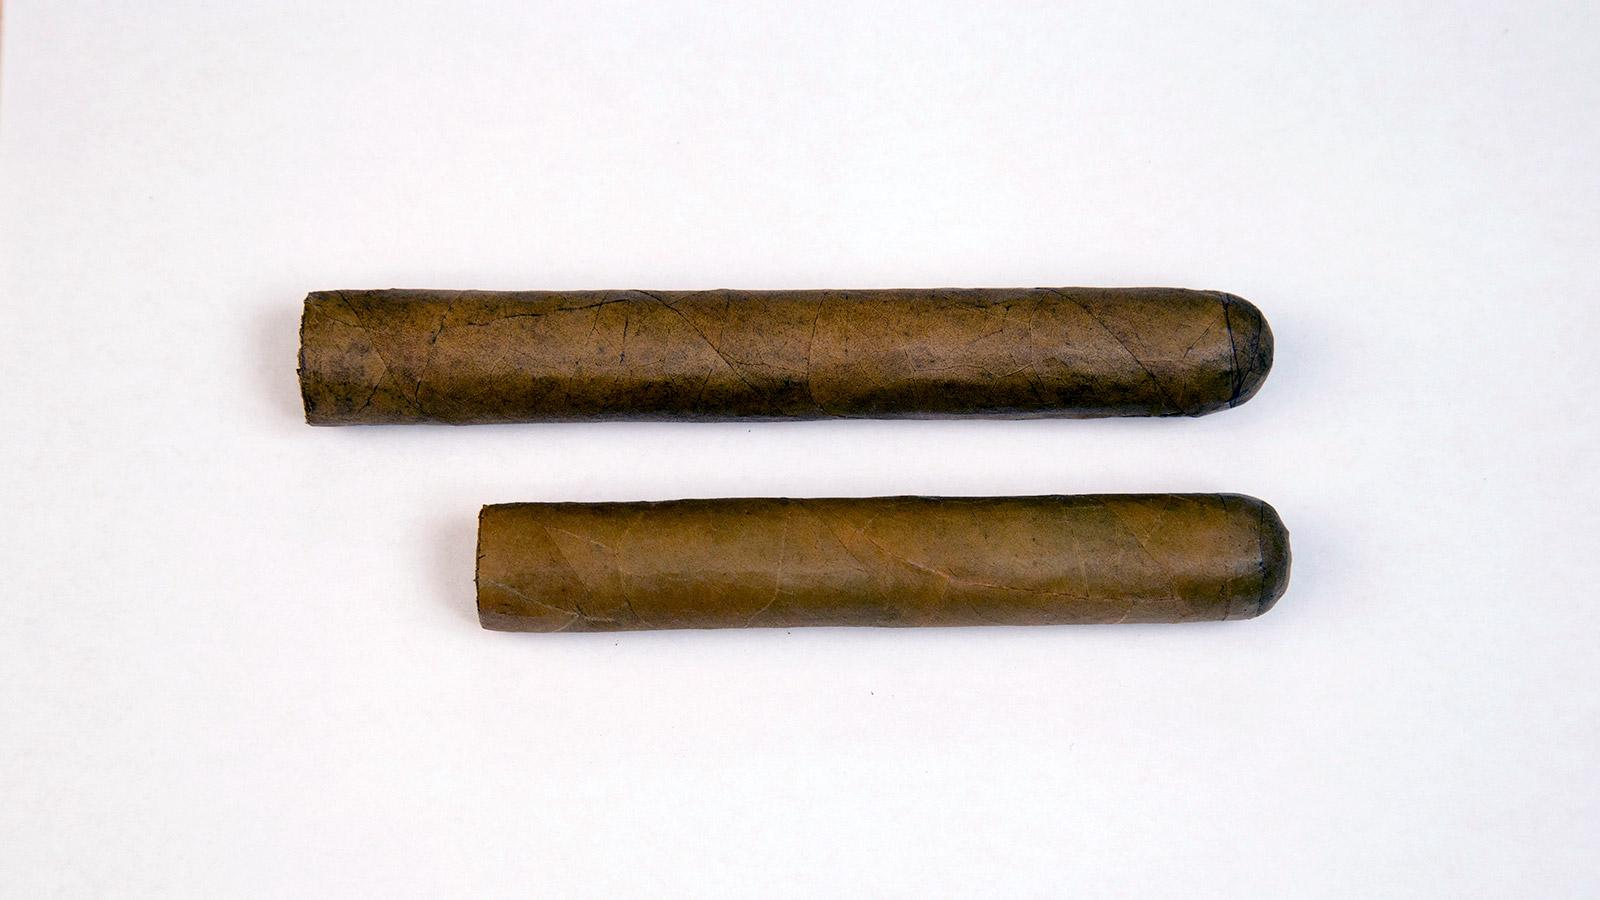 Are There Any Telltale Signs That Indicate a Cigar's Origin?